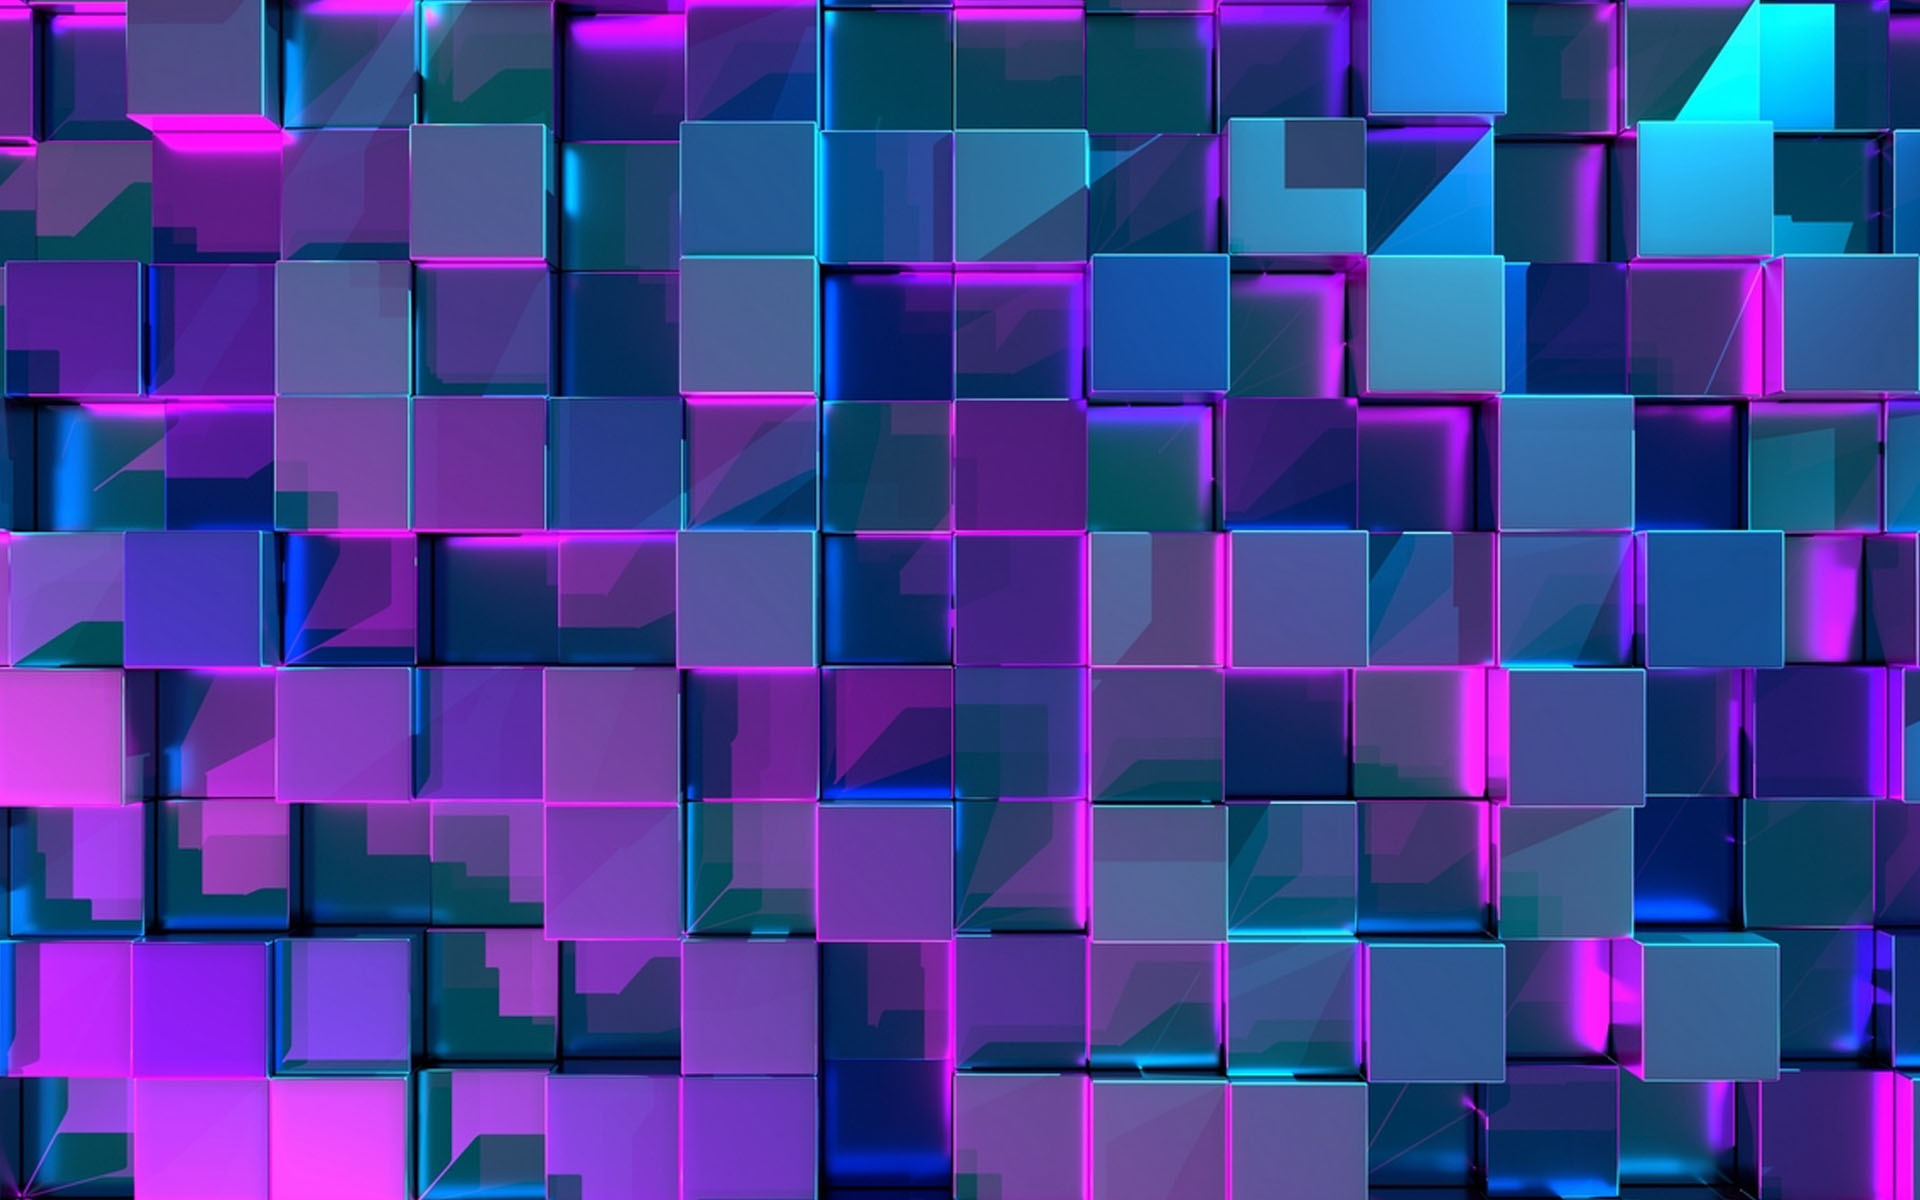 Iphone X Fornite Wallpapers Led Light Cubes Hd Wallpaper Hd Latest Wallpapers